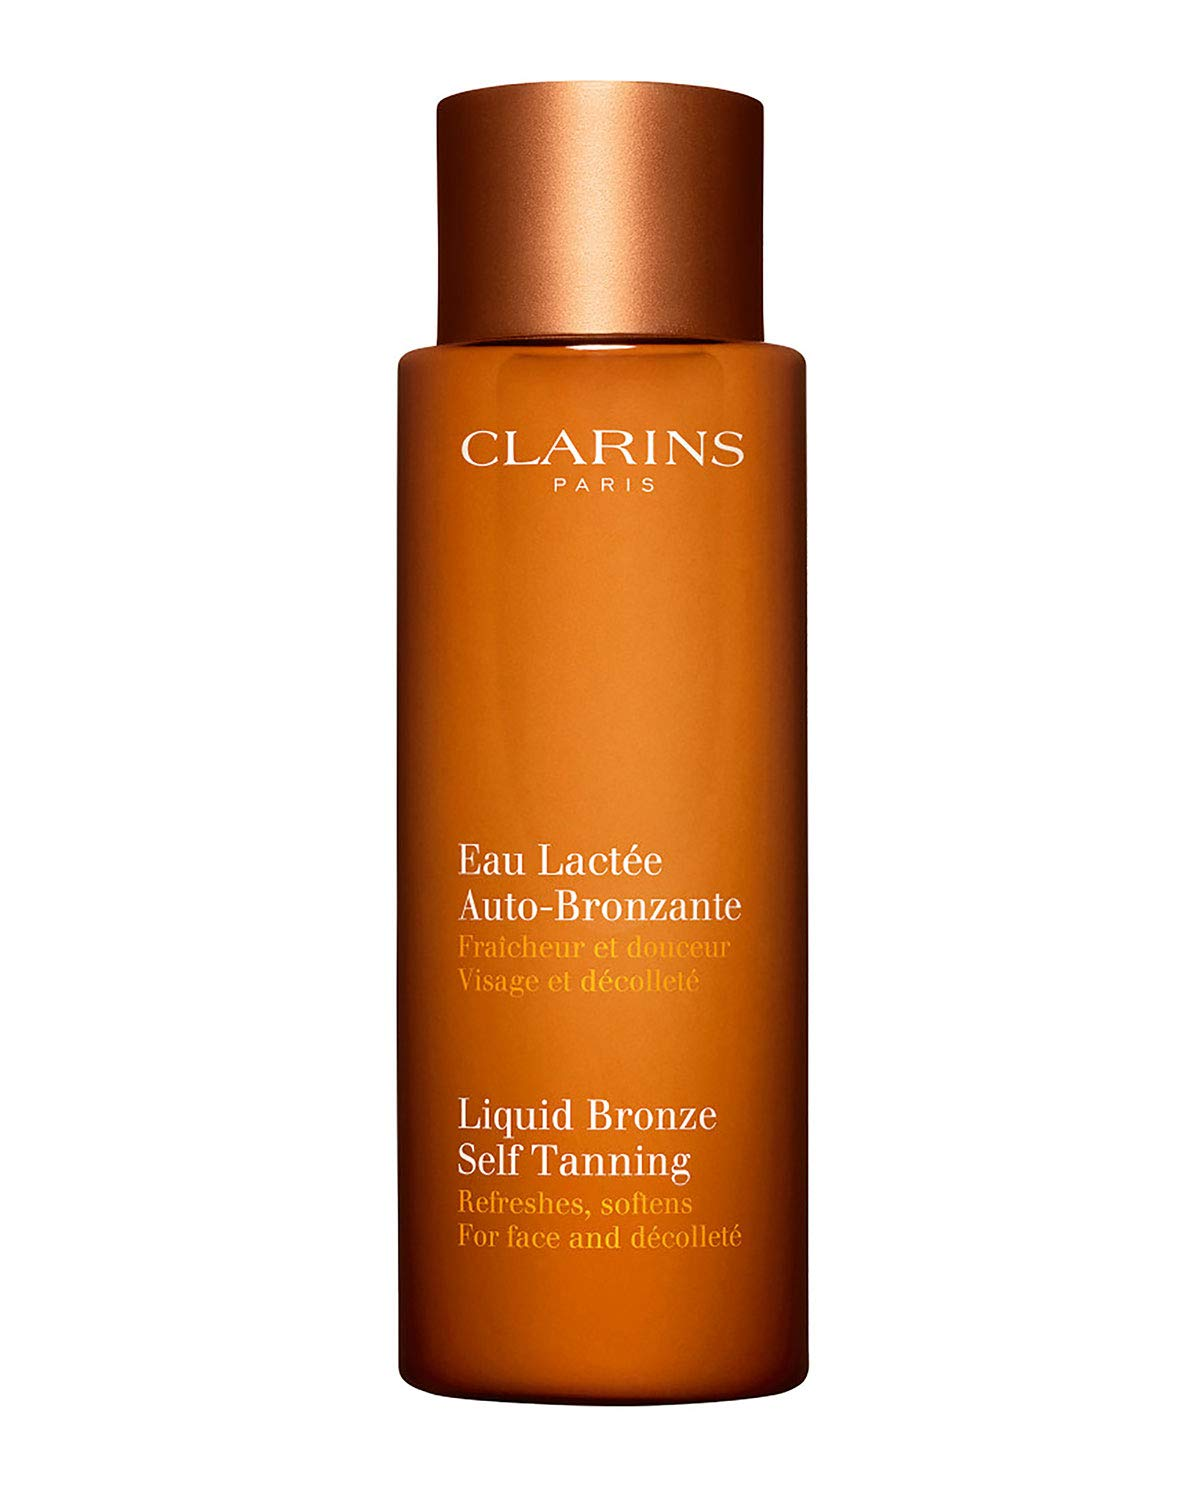 Clarins Liquid Bronze Self Tanning 4.2 oz by Clarins [Beauty]